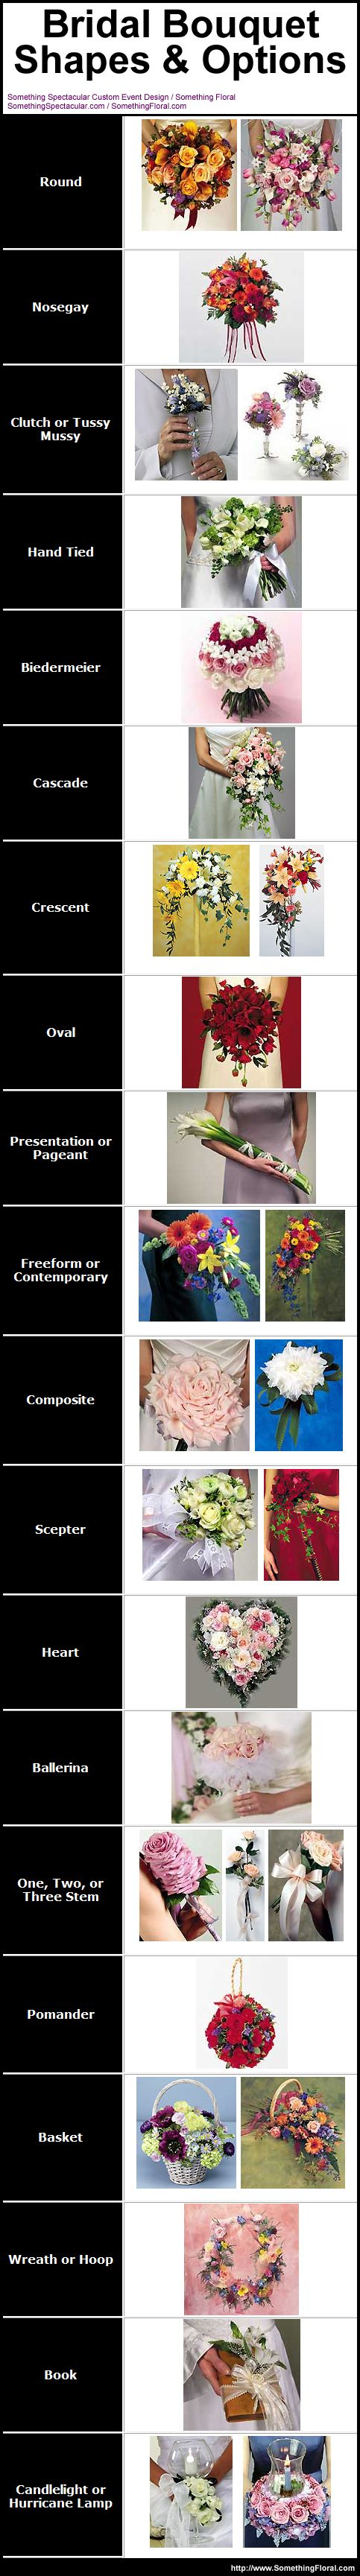 Wedding Infographic. Planning information. A helpful wedding flower reference for brides. A pictorial list of bridal bouquet and bridesmaid bouquet shapes and options.